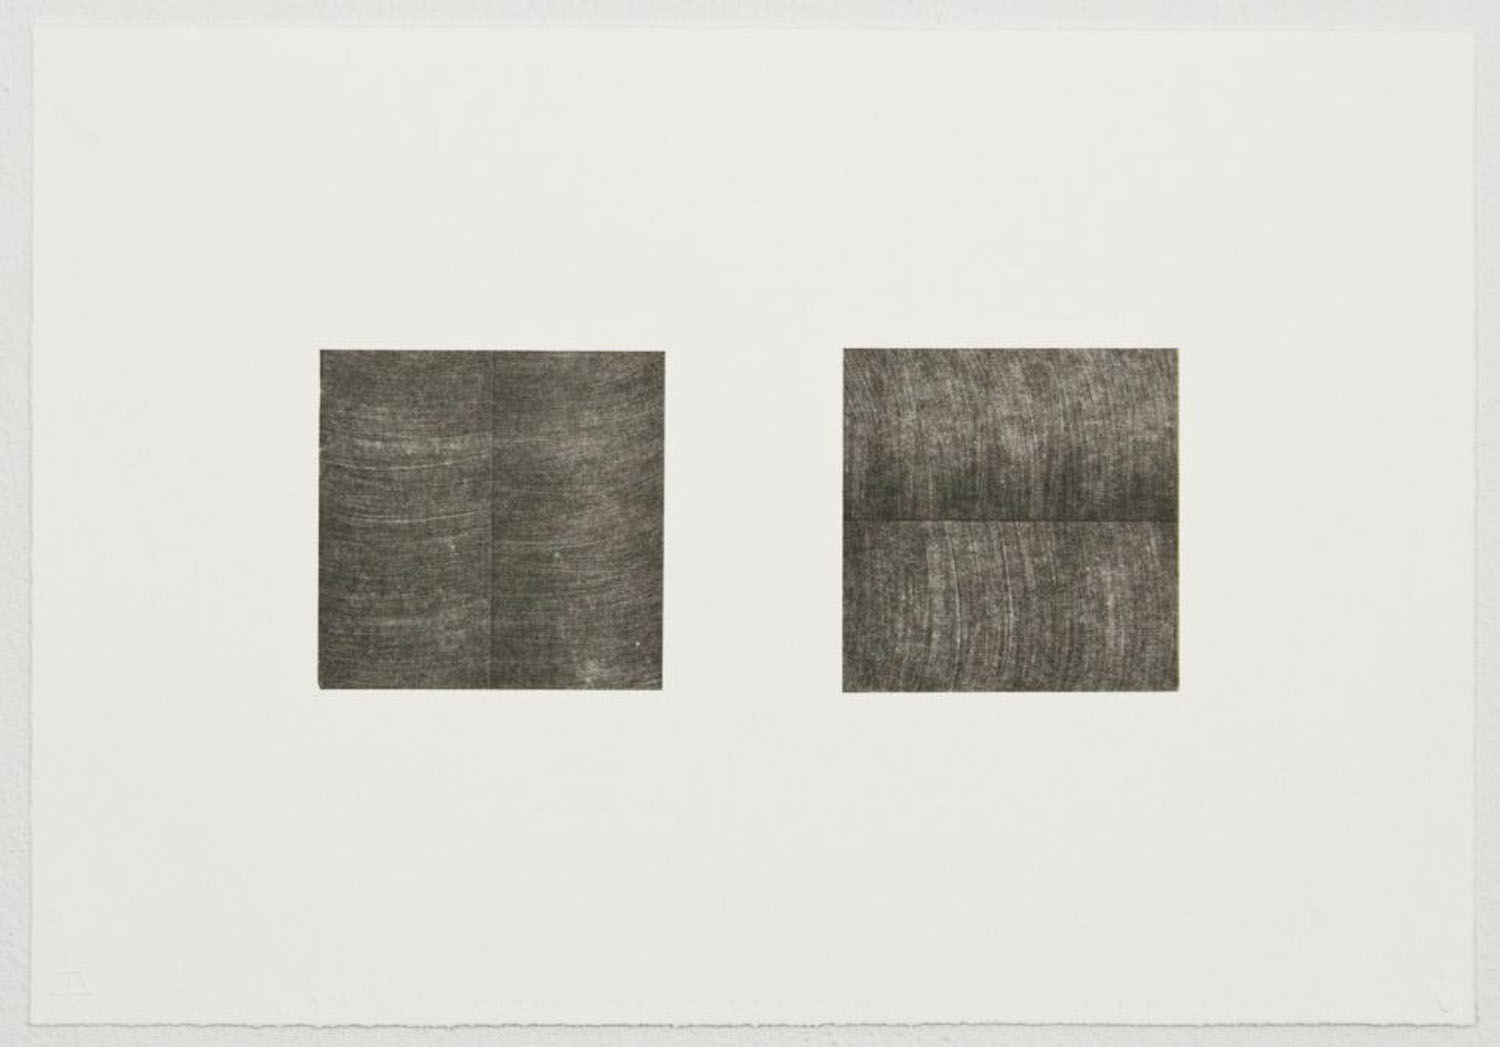 """Unfolding Diptych No. 1, Edition of 15, 2015  Single-color lithograph with chine colle, 10.17"""" x 15.81"""" (paper size)  Collaborating Printer: Valpuri Remling @ Tamarind Institute"""